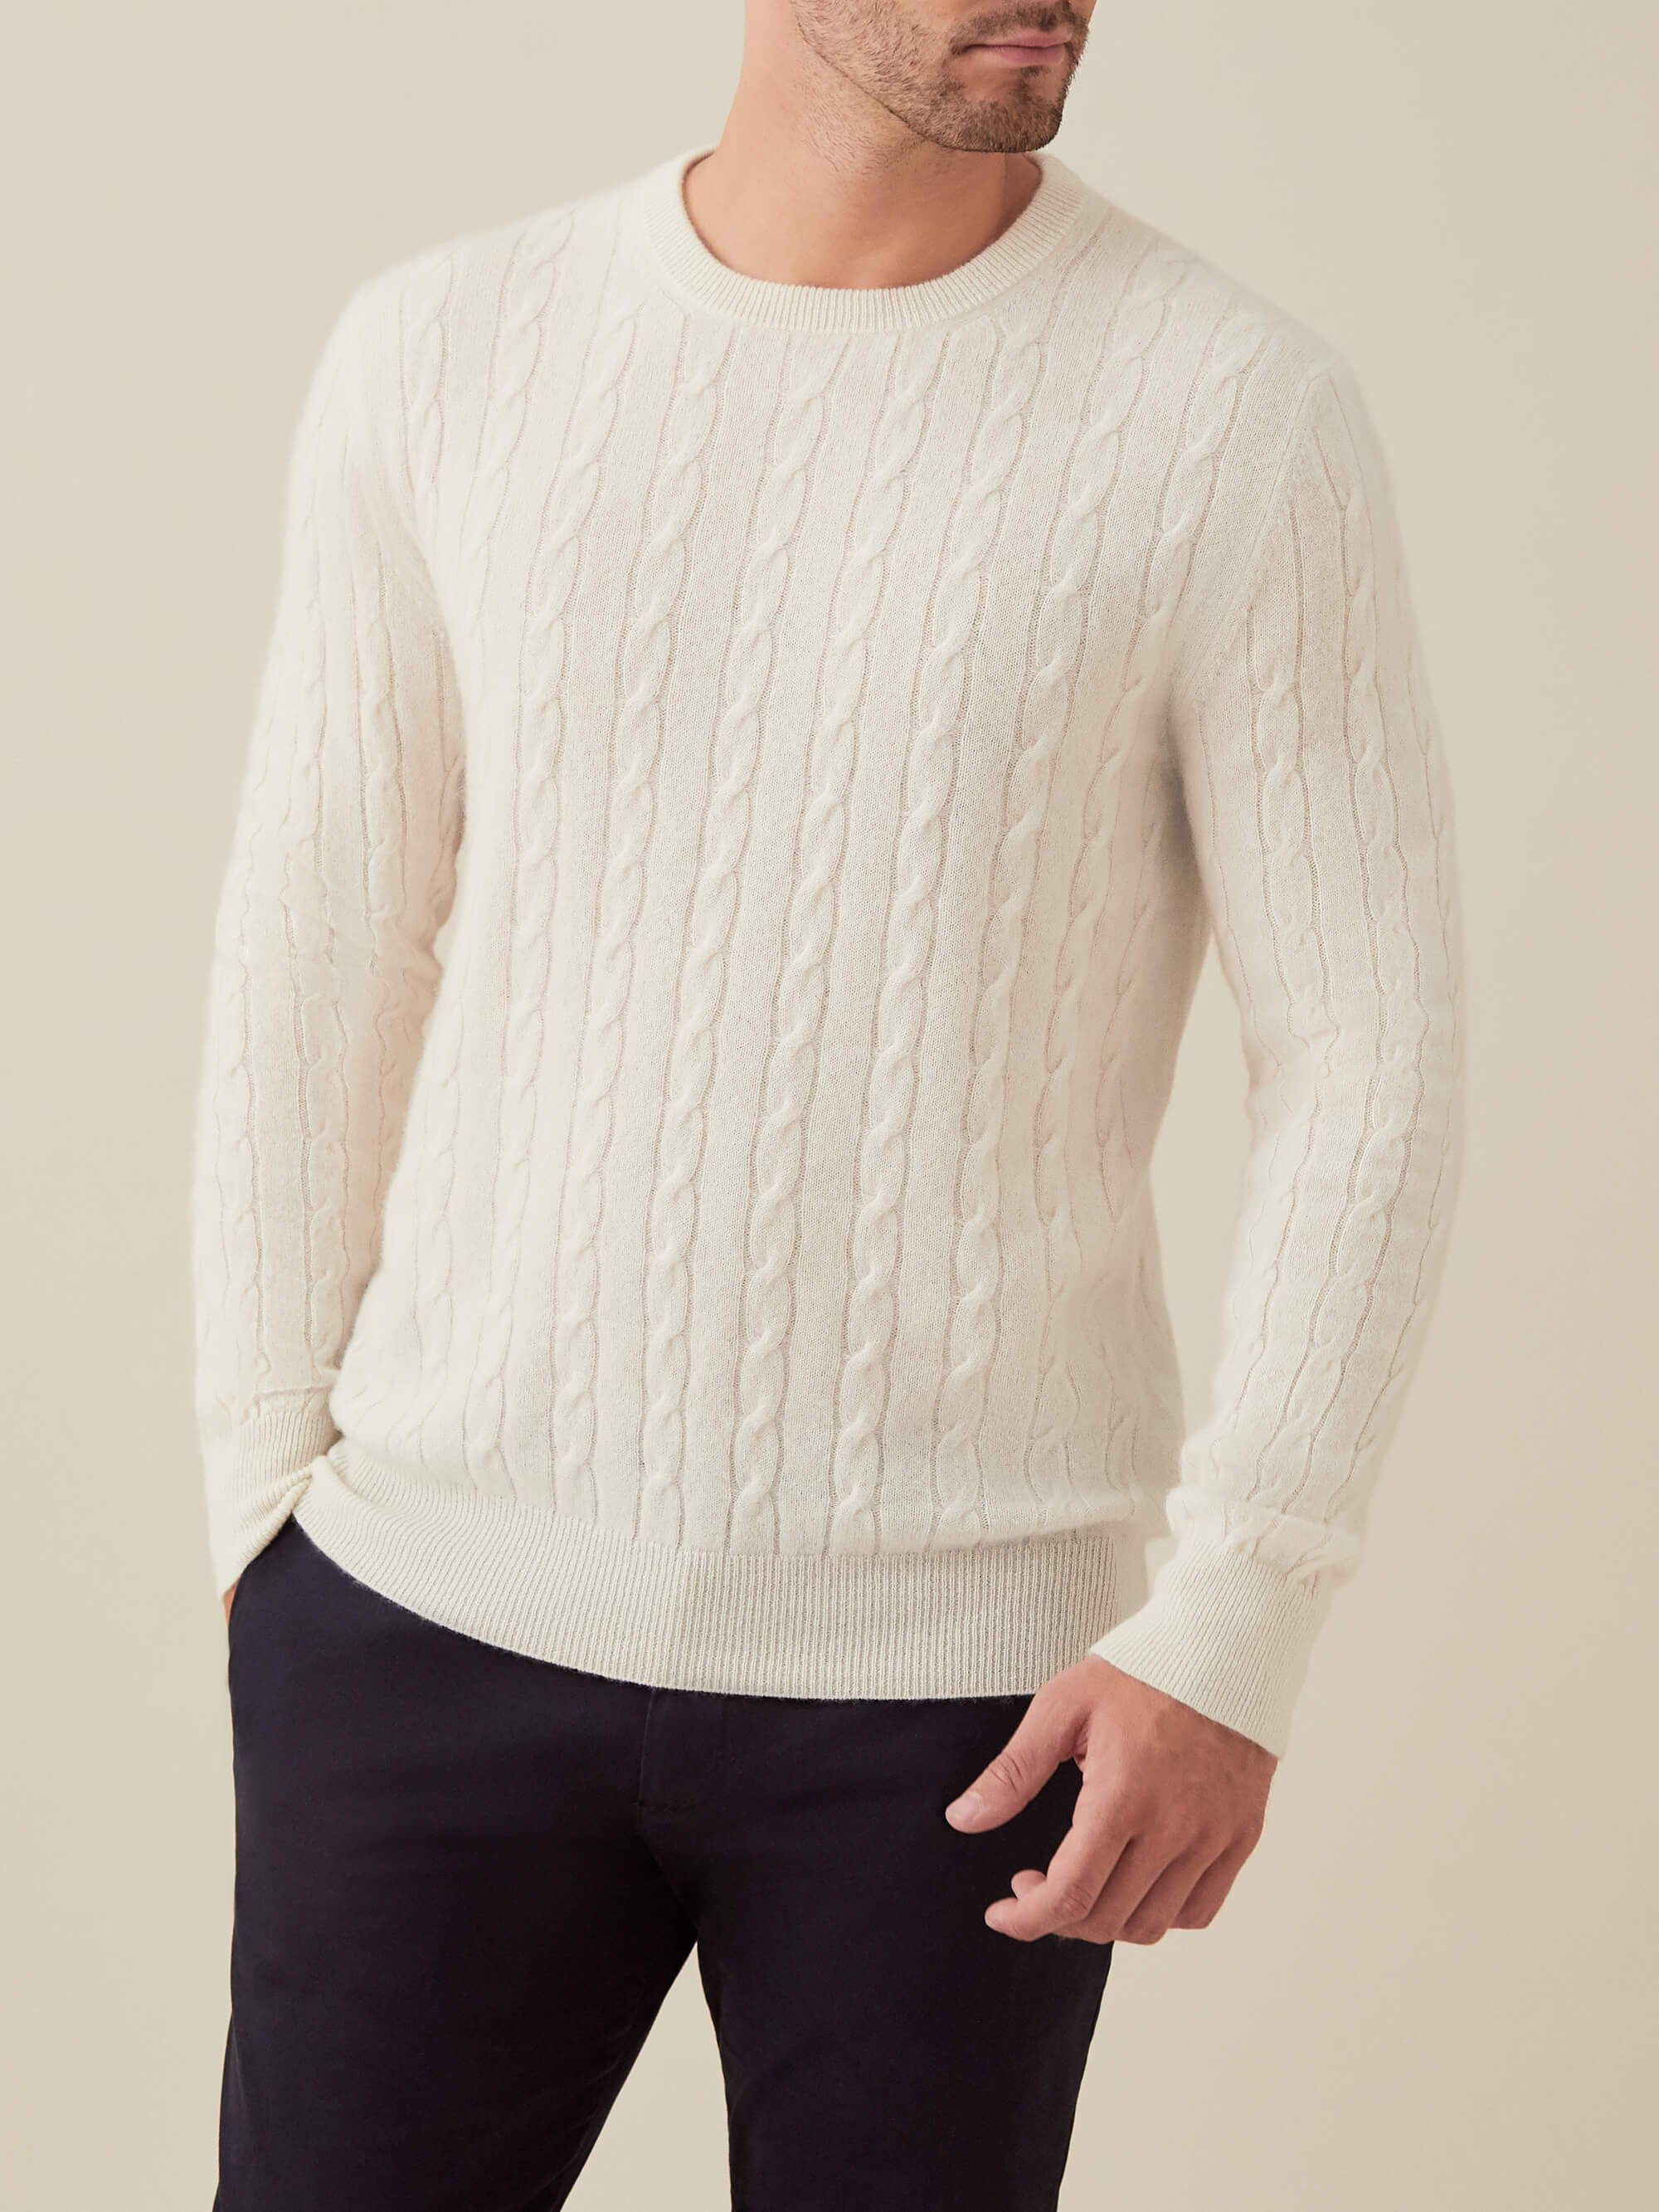 Luca Faloni White Pure Cashmere Cable Knit Made in Italy